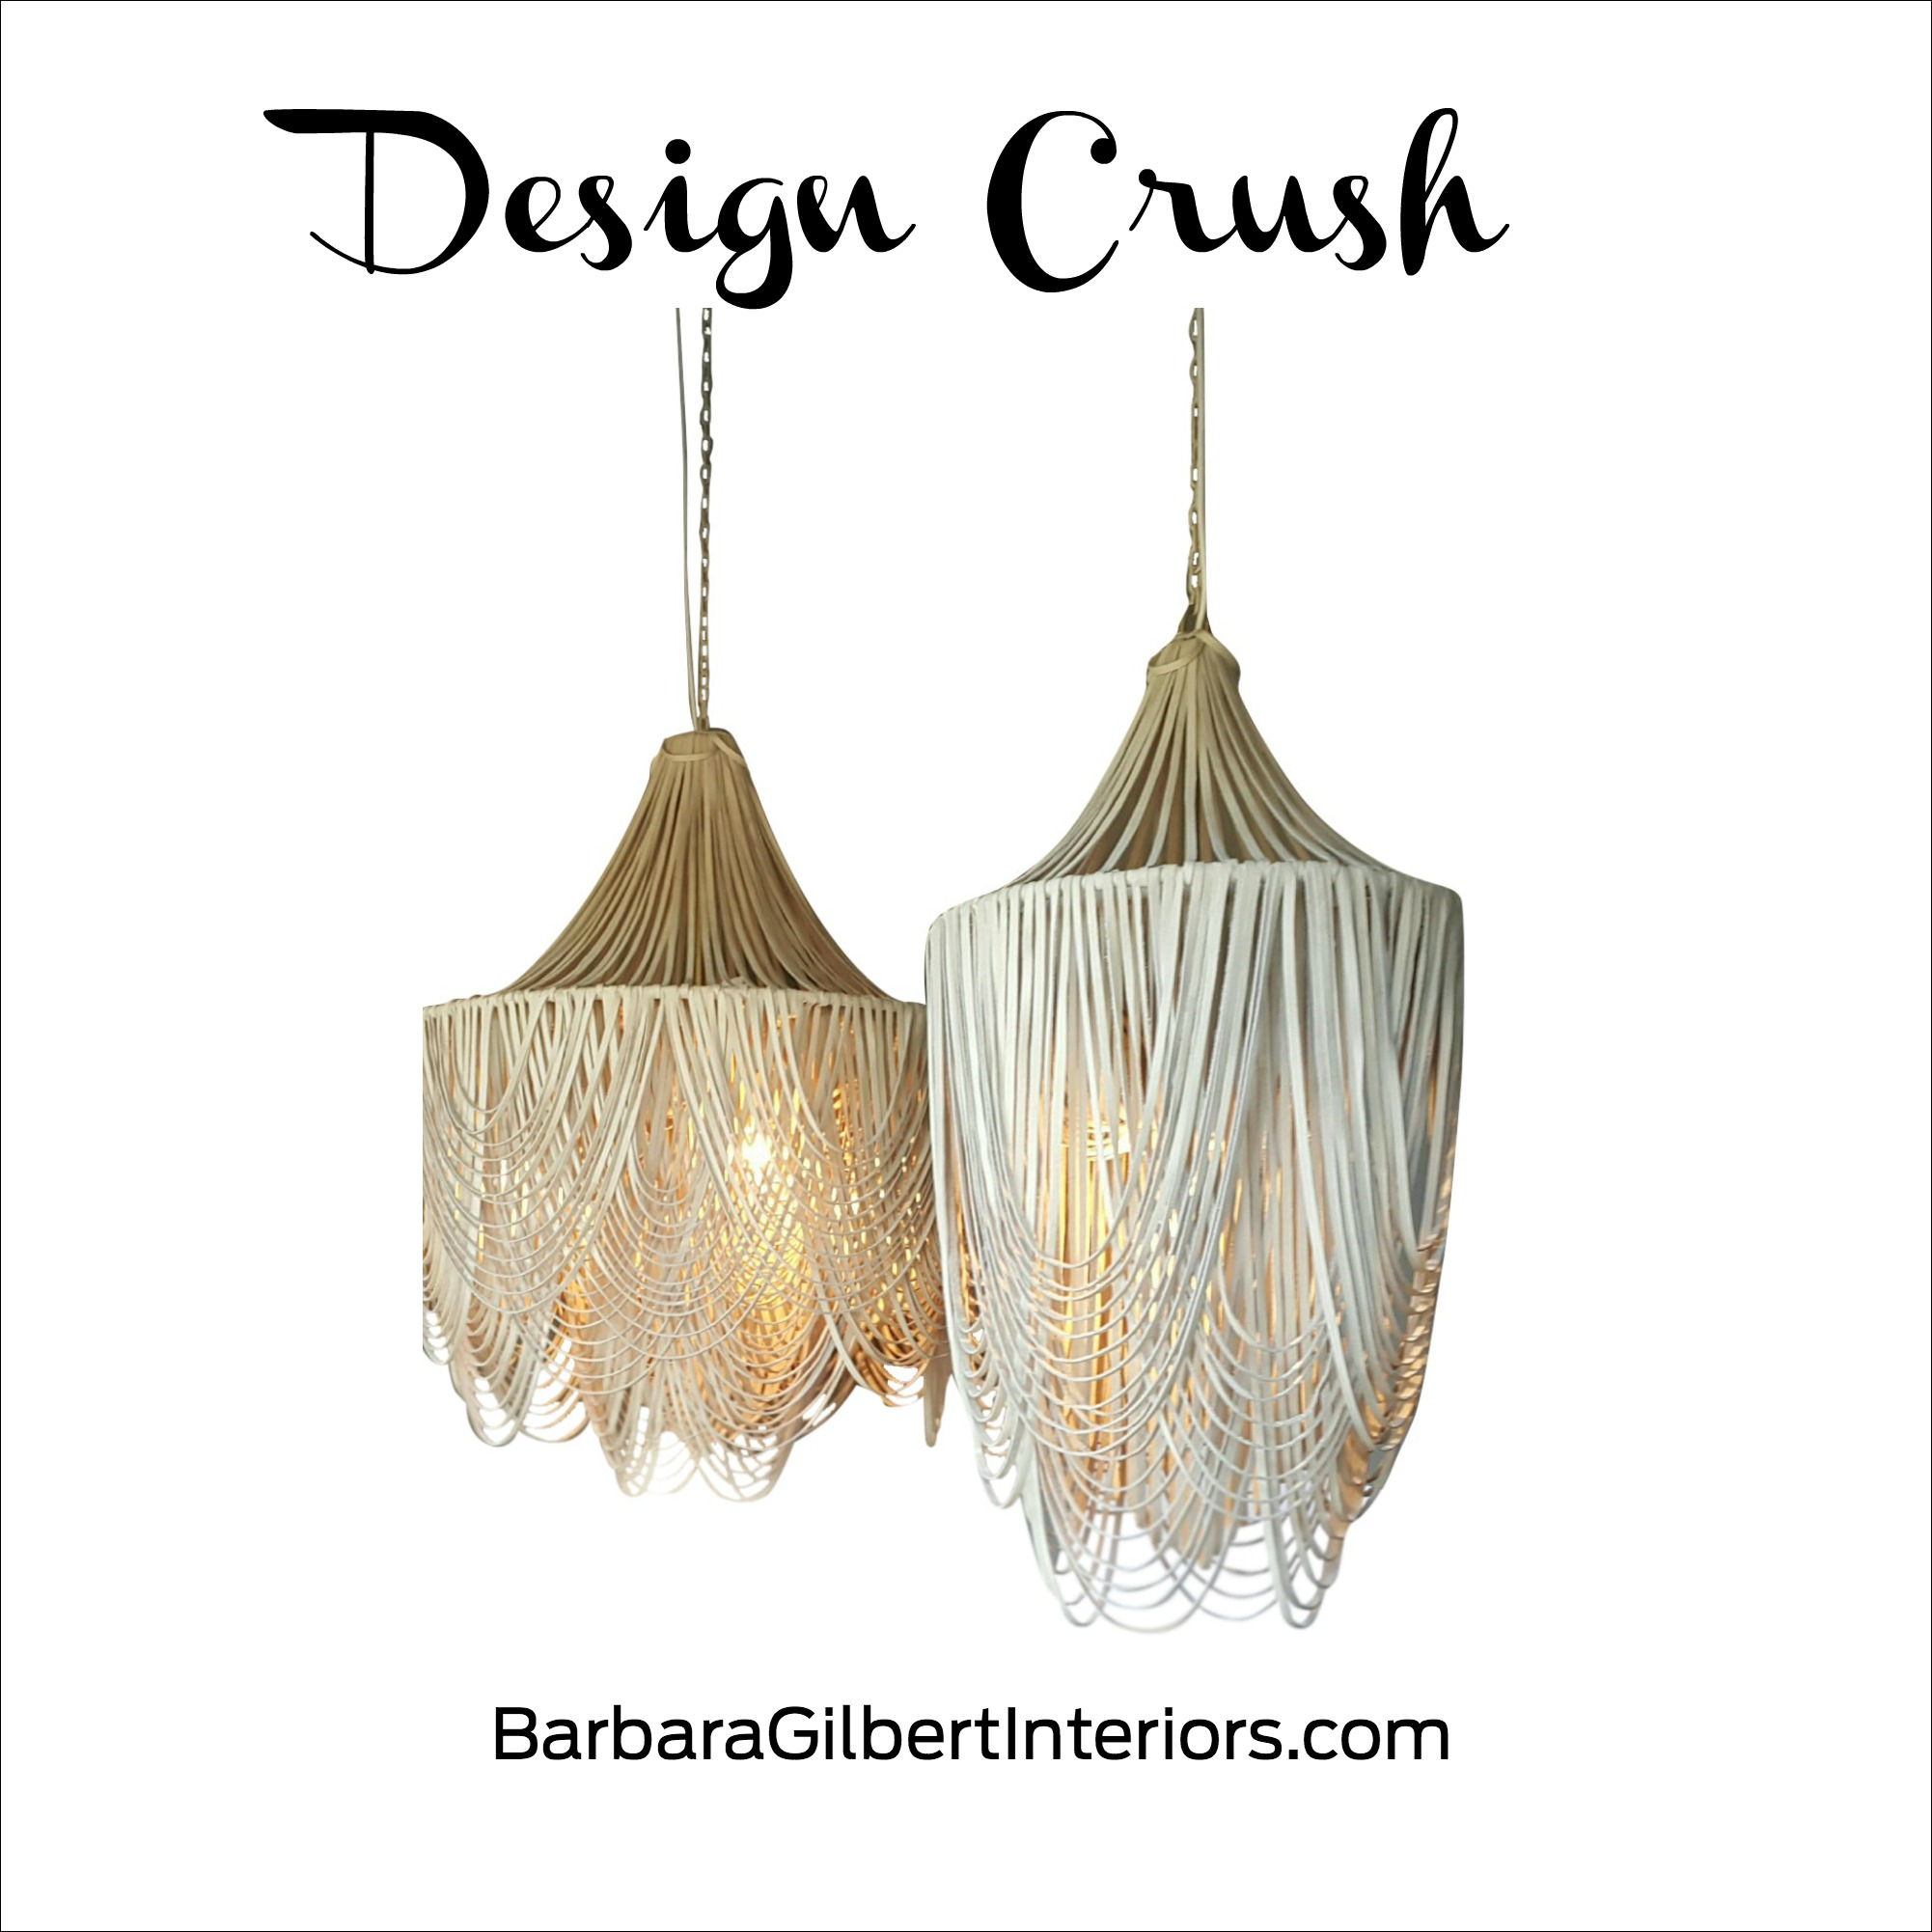 Design Crush Whisper Leather Chandelier | Interior Design Dallas | Barbara Gilbert Interiors